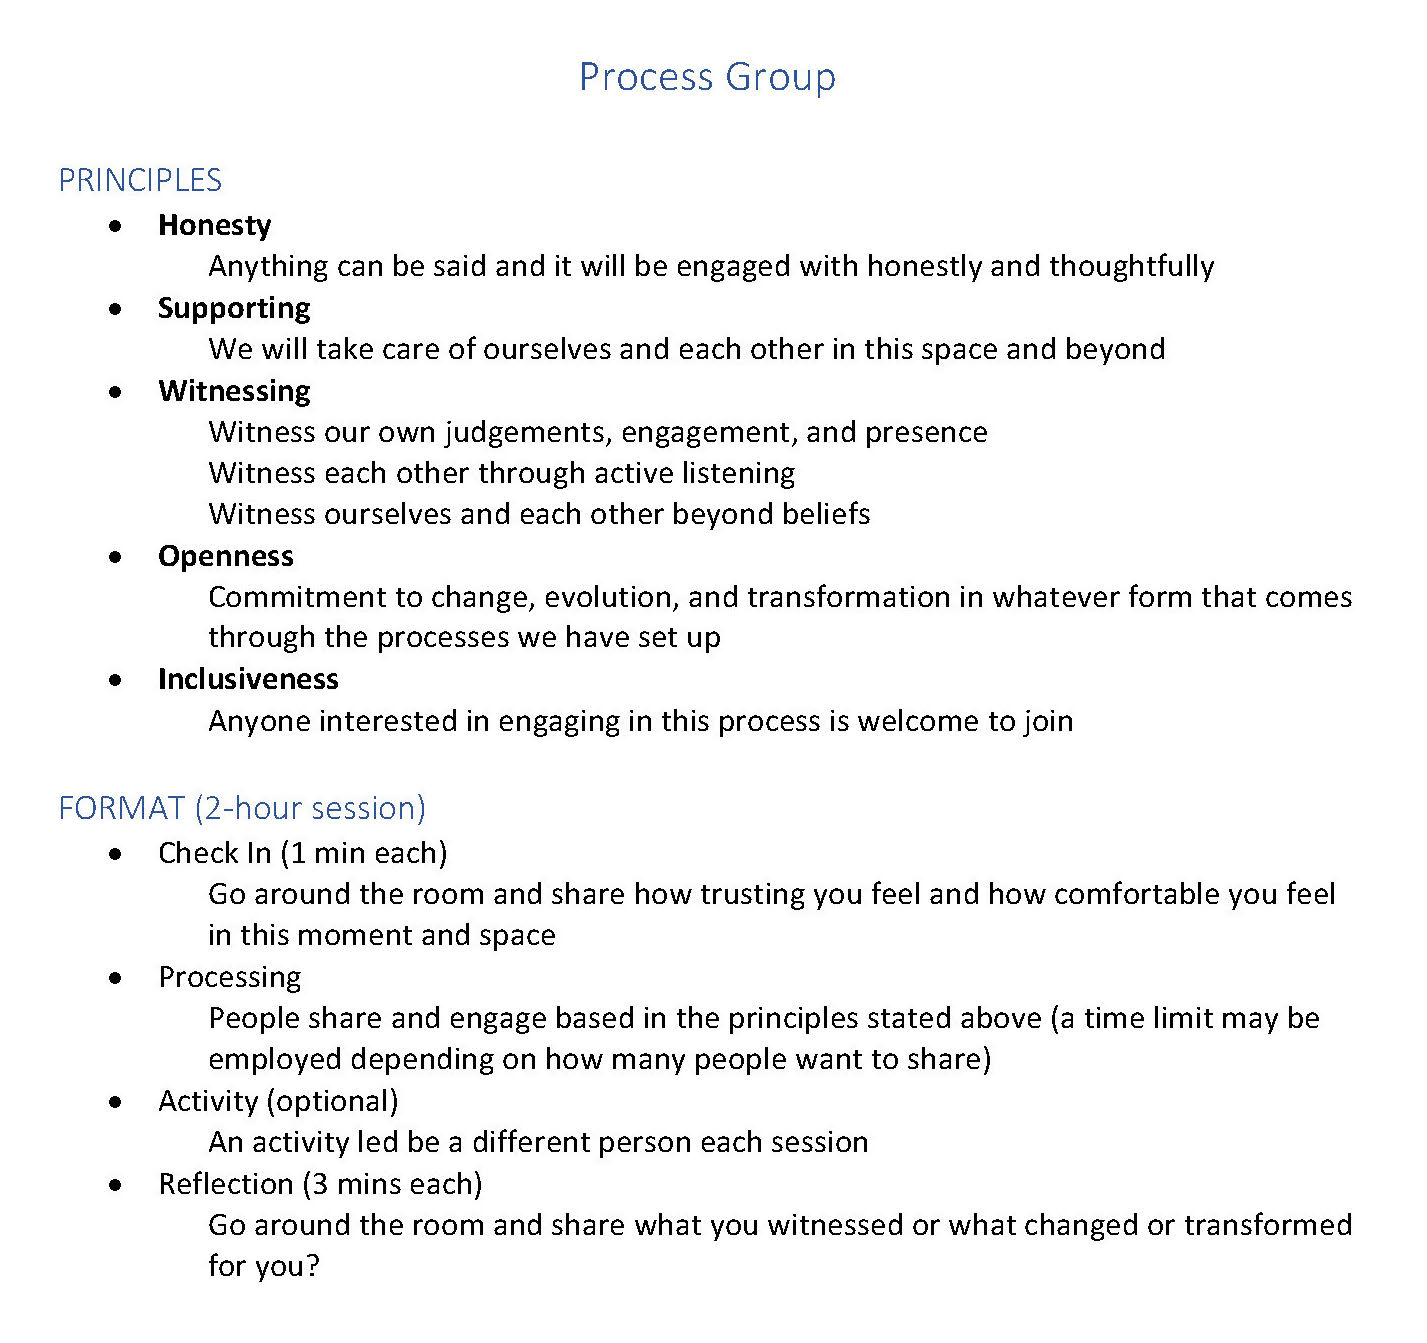 Principles and format of the process group